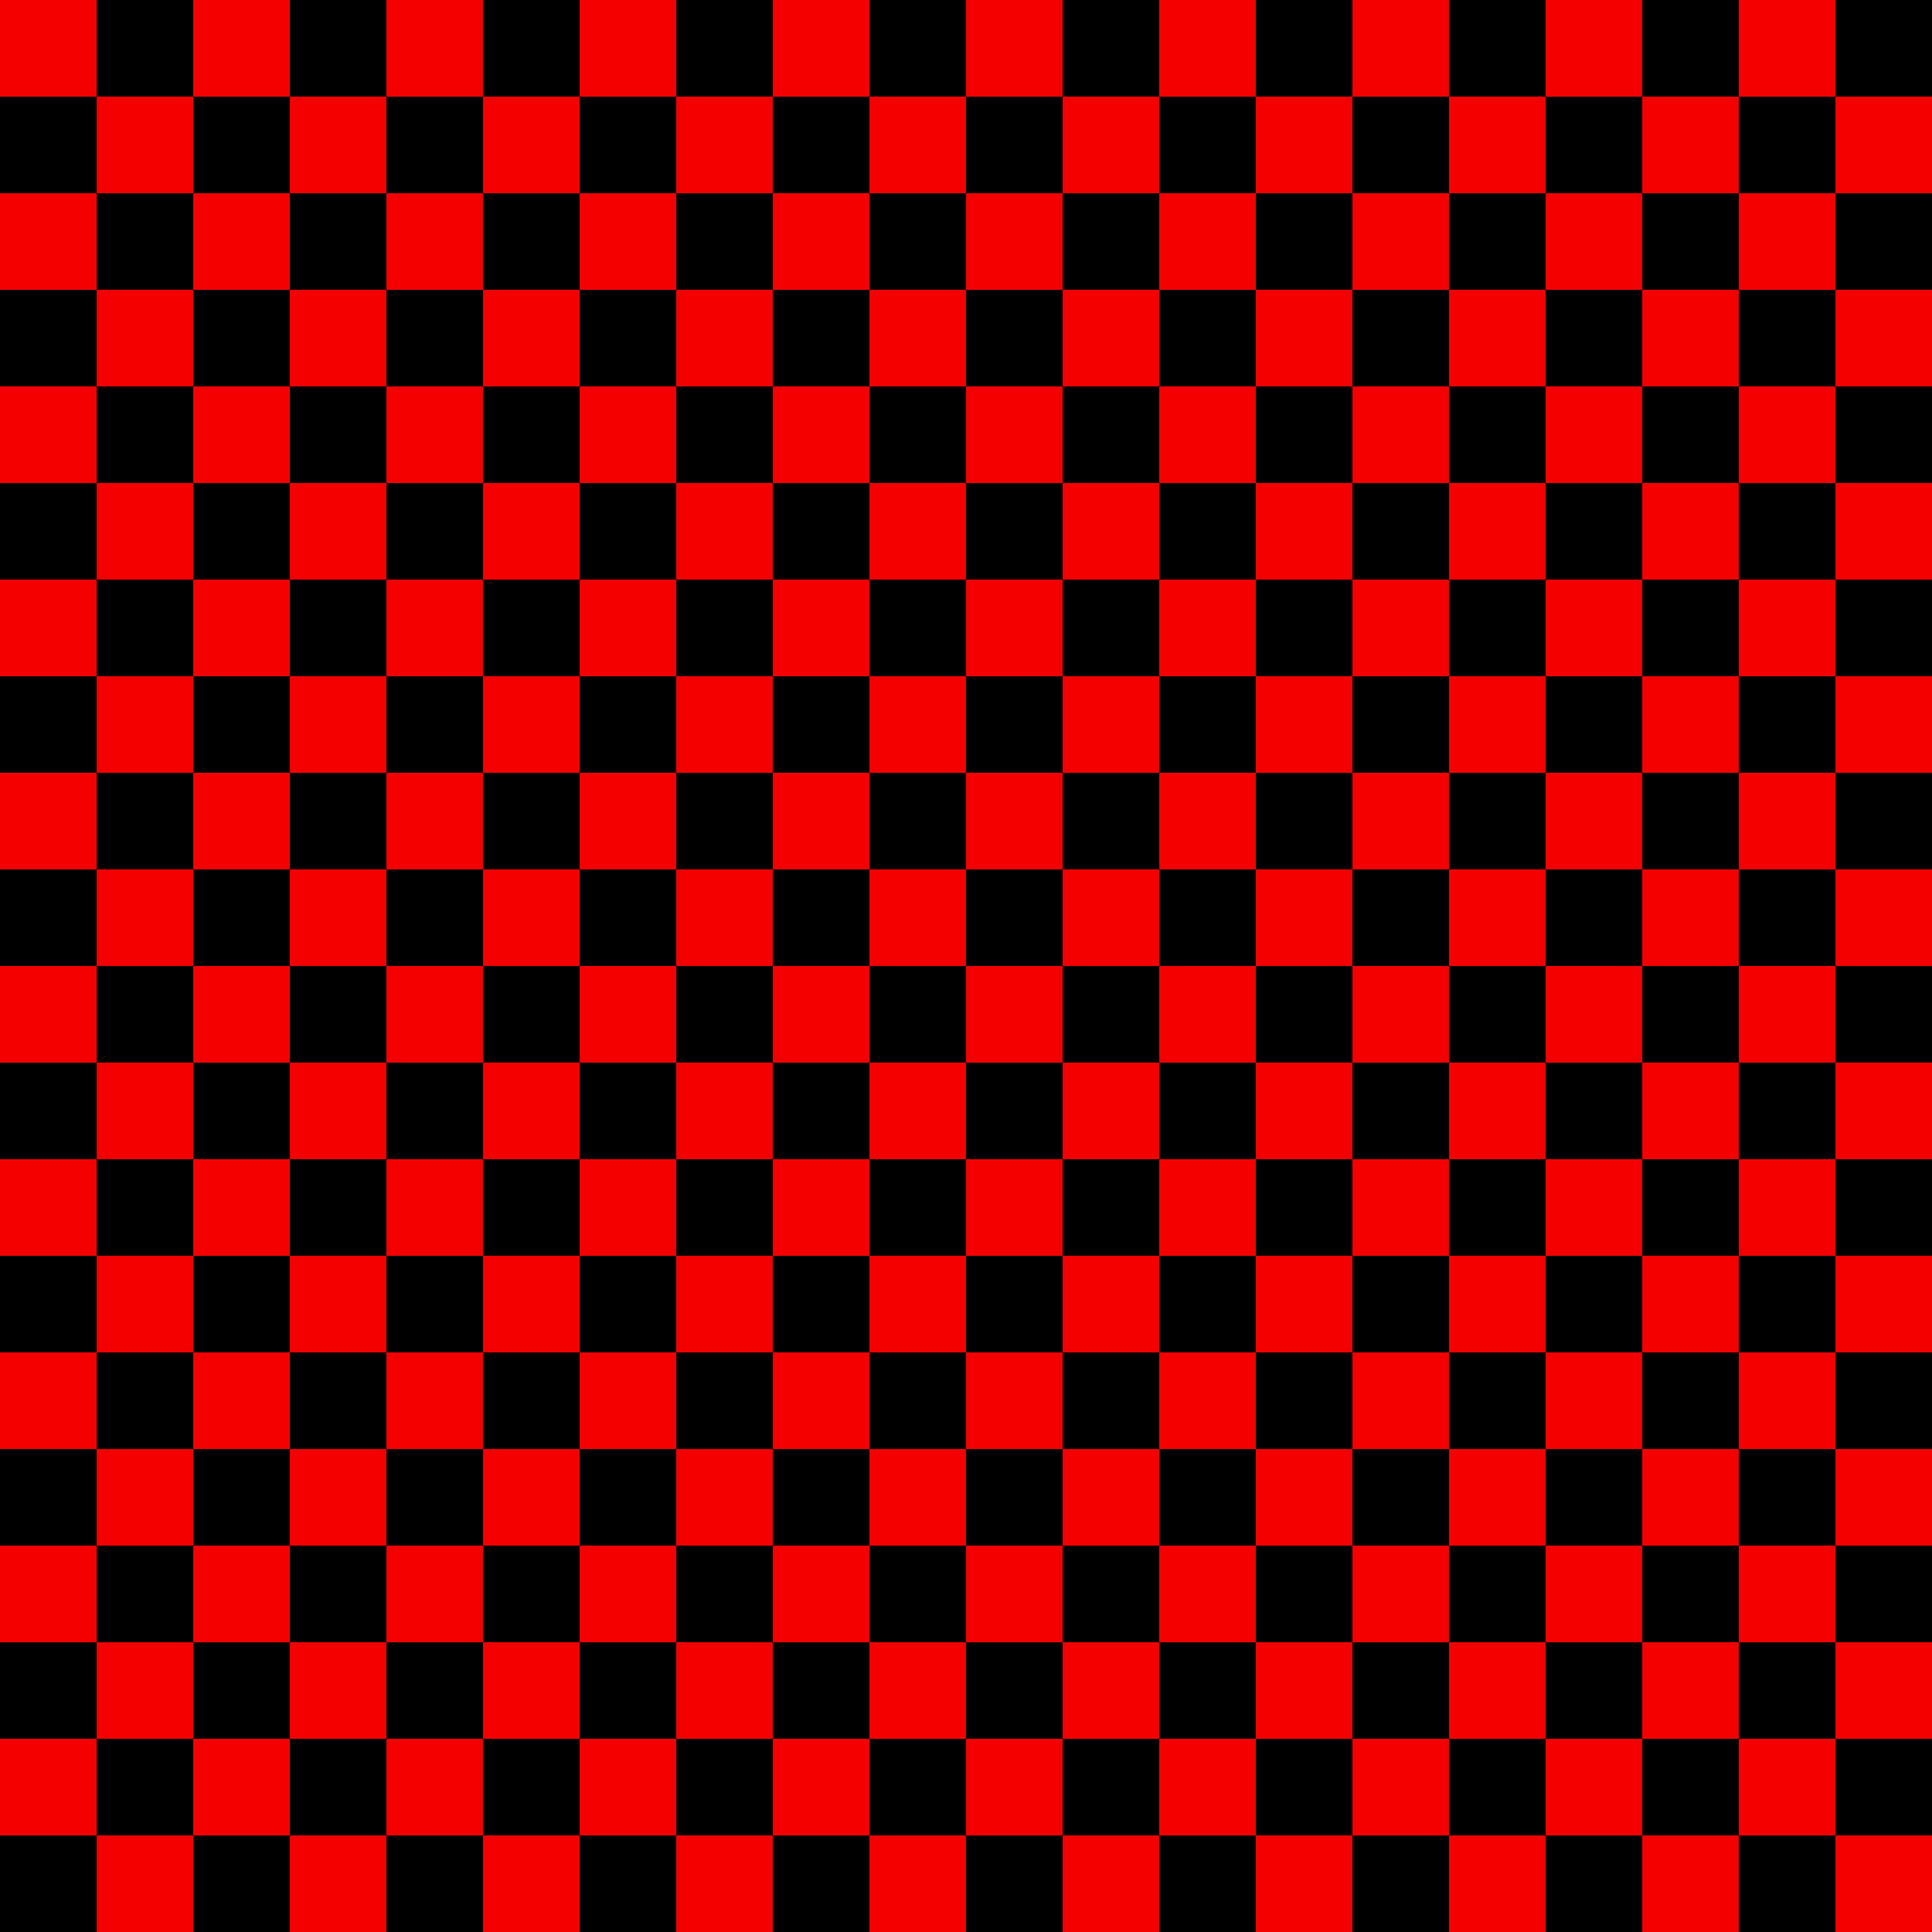 Pictures Of A Checker Board New Pattern Clipart Checkerboard Pencil and In Color Pattern